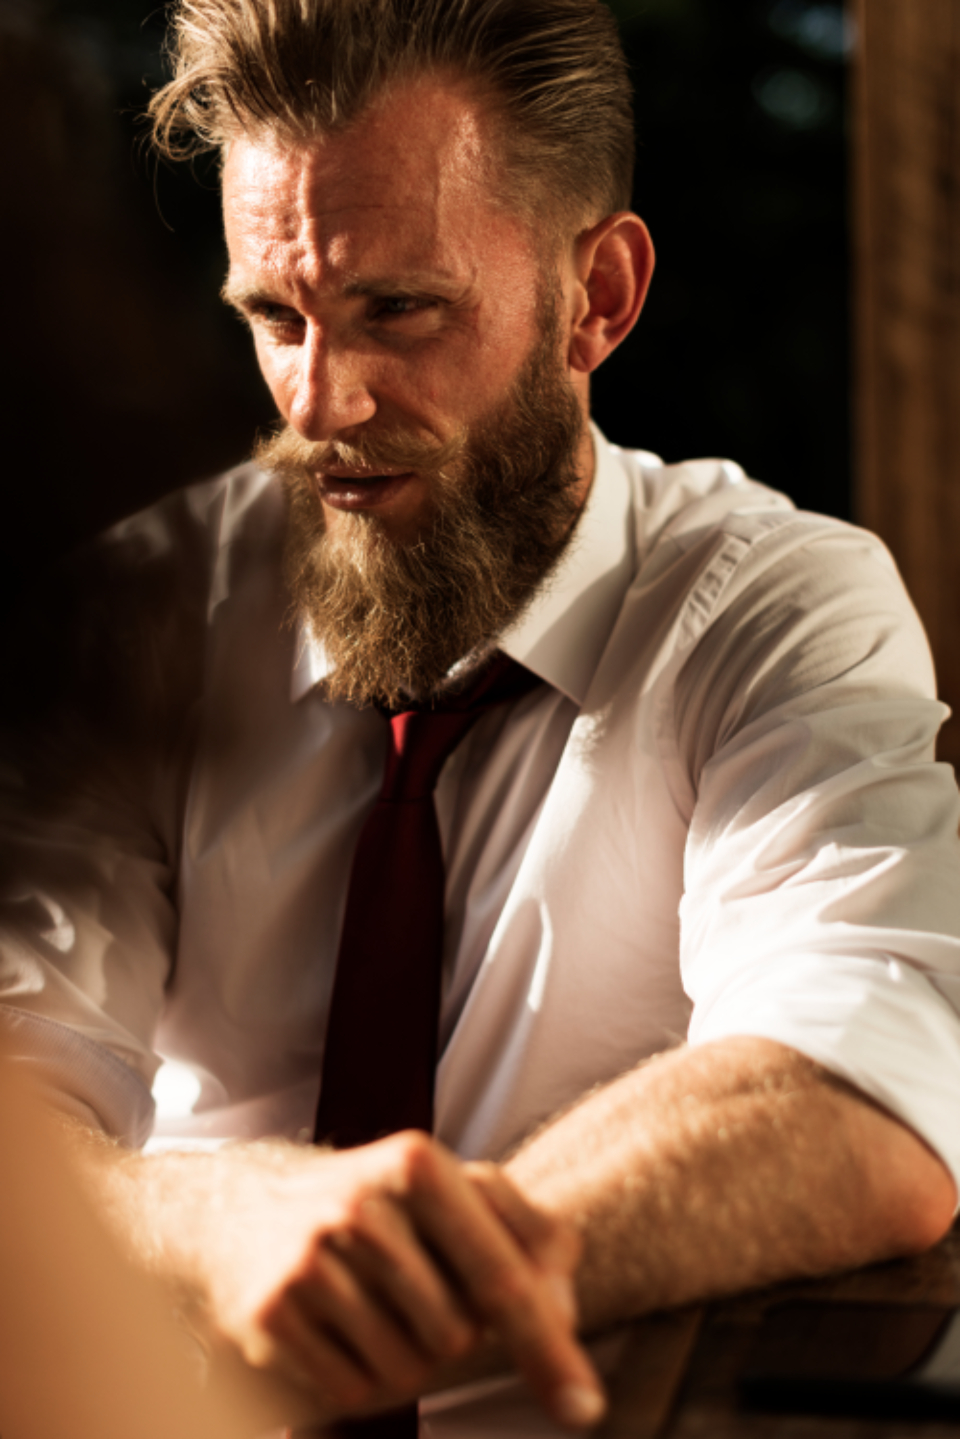 beard business businessman confidence corporate deal male man offer style sunlight sunny tie people